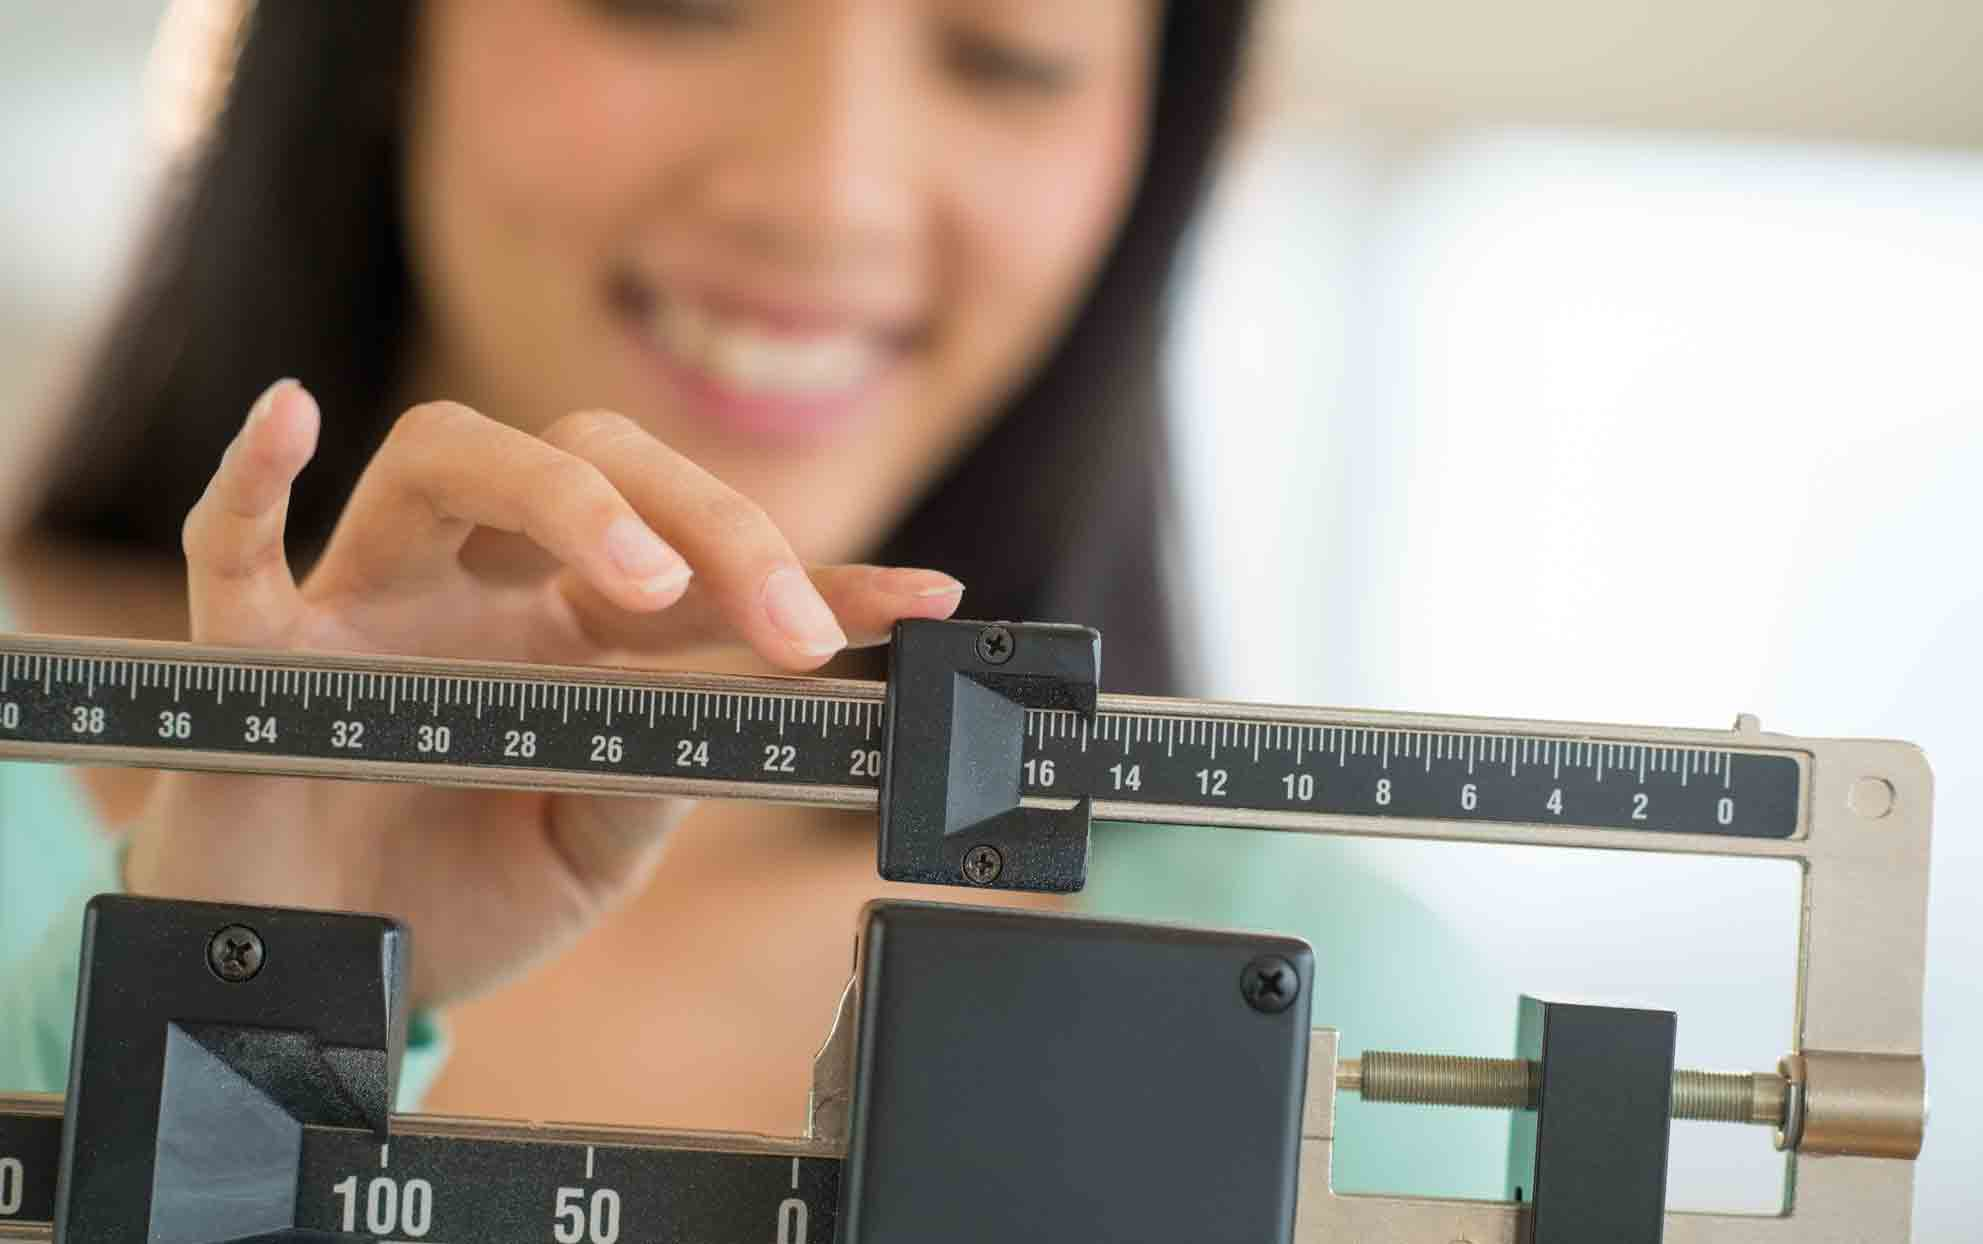 woman weighing herself on a slide scale